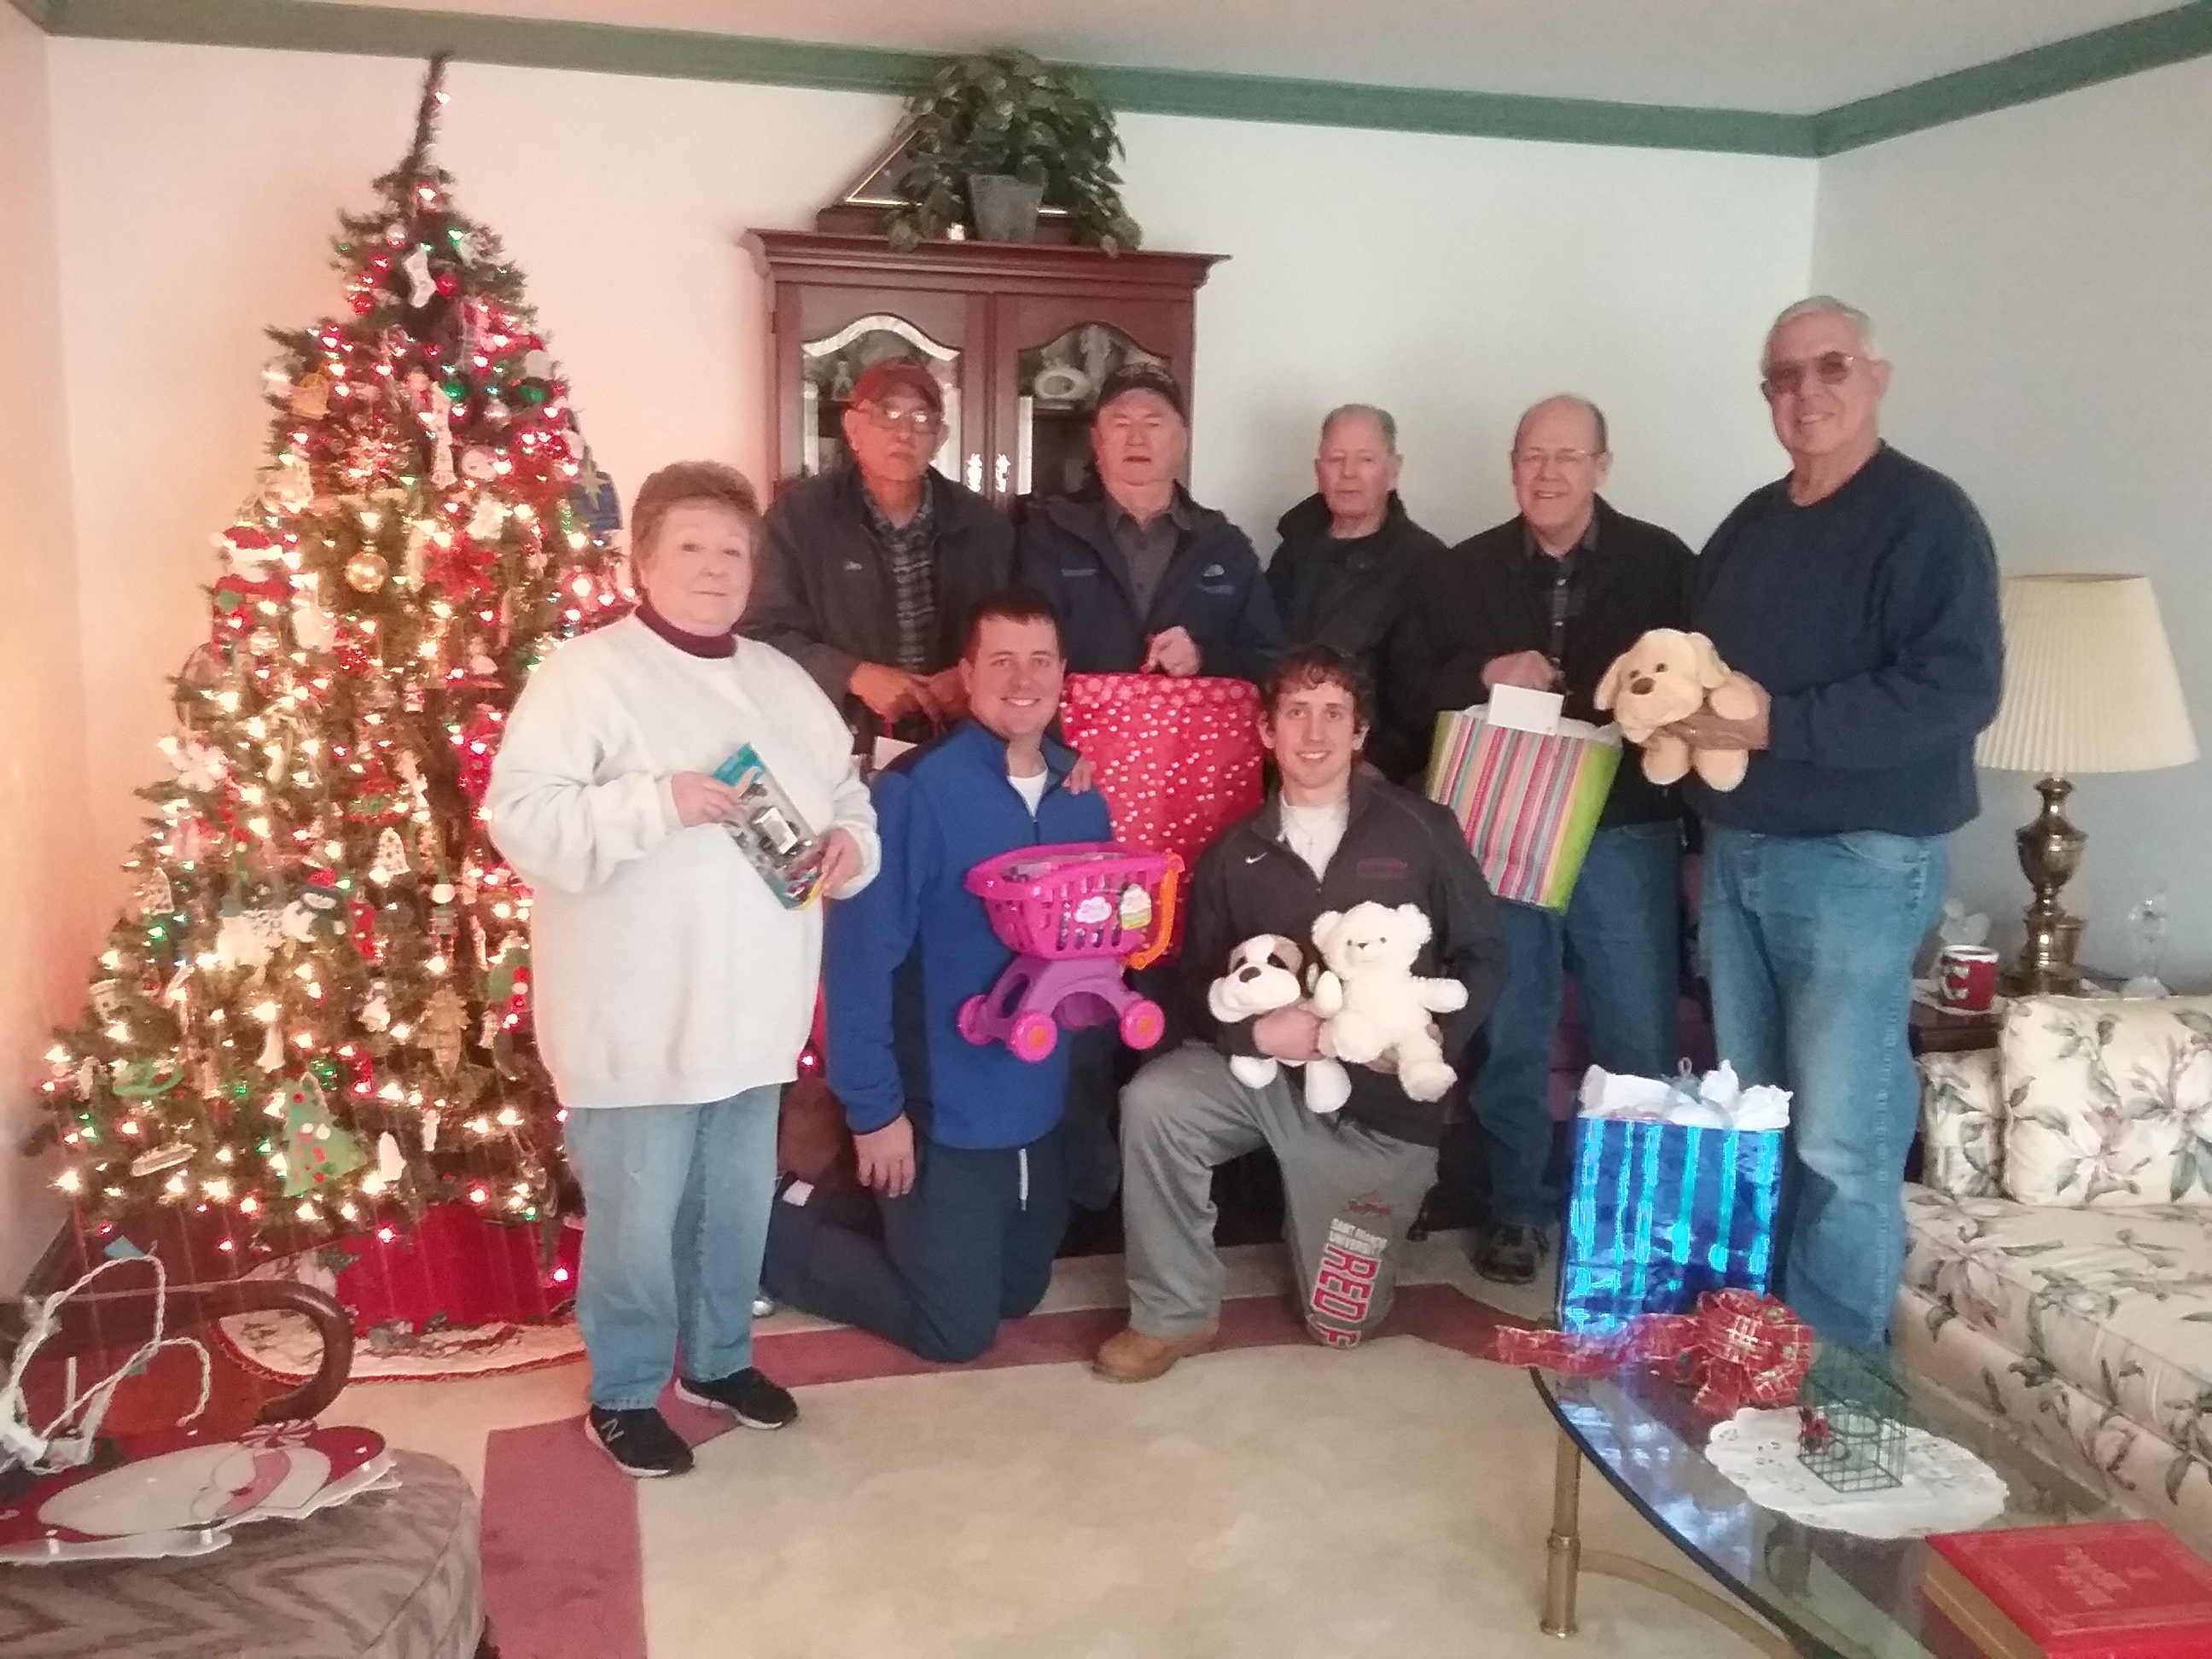 Group photo with presents